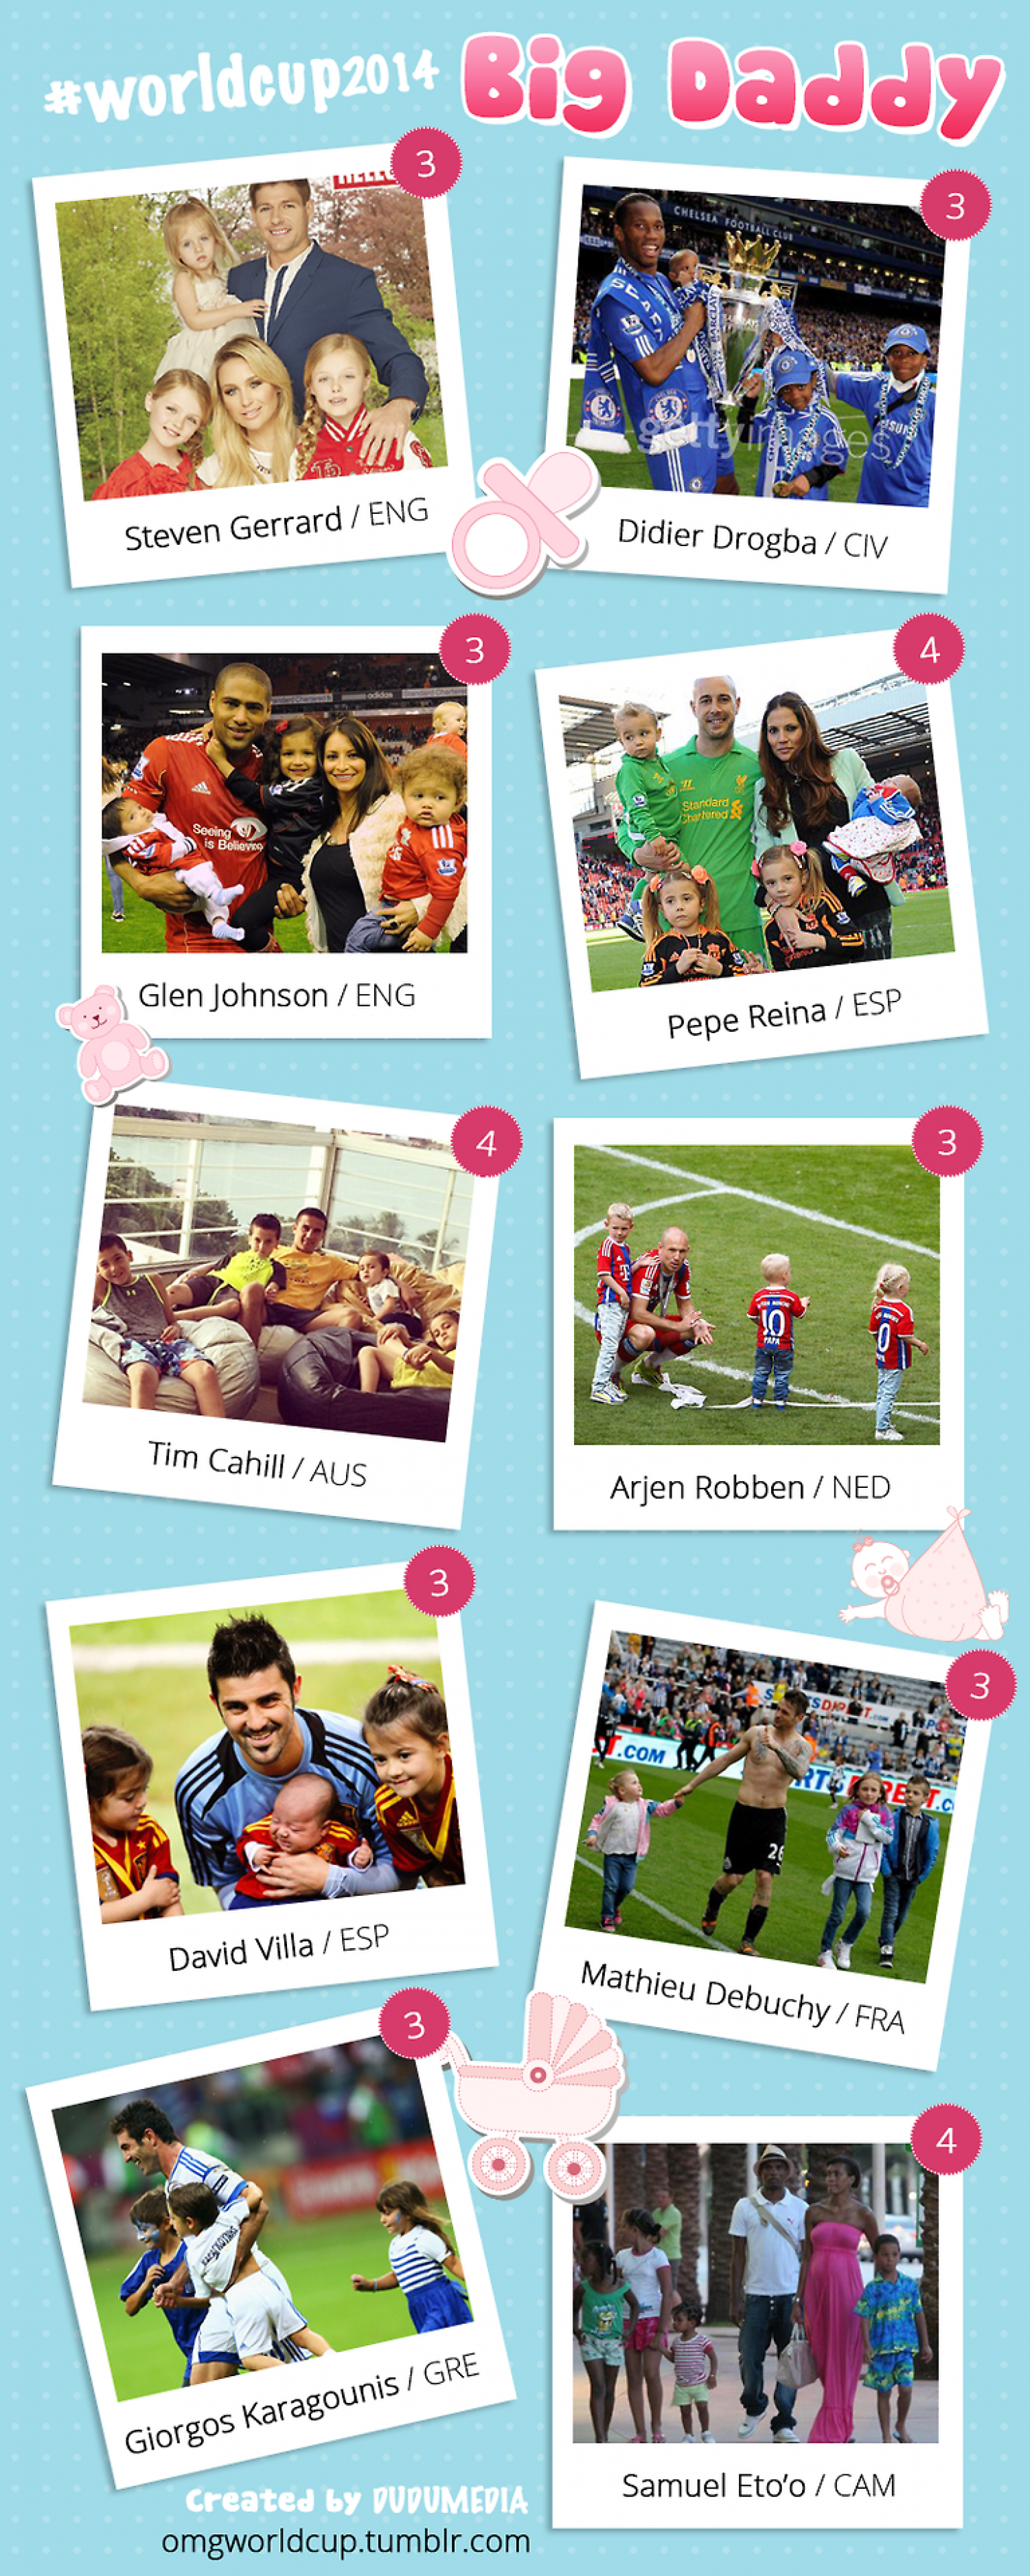 World Cup 2014 - Big Daddy Infographic